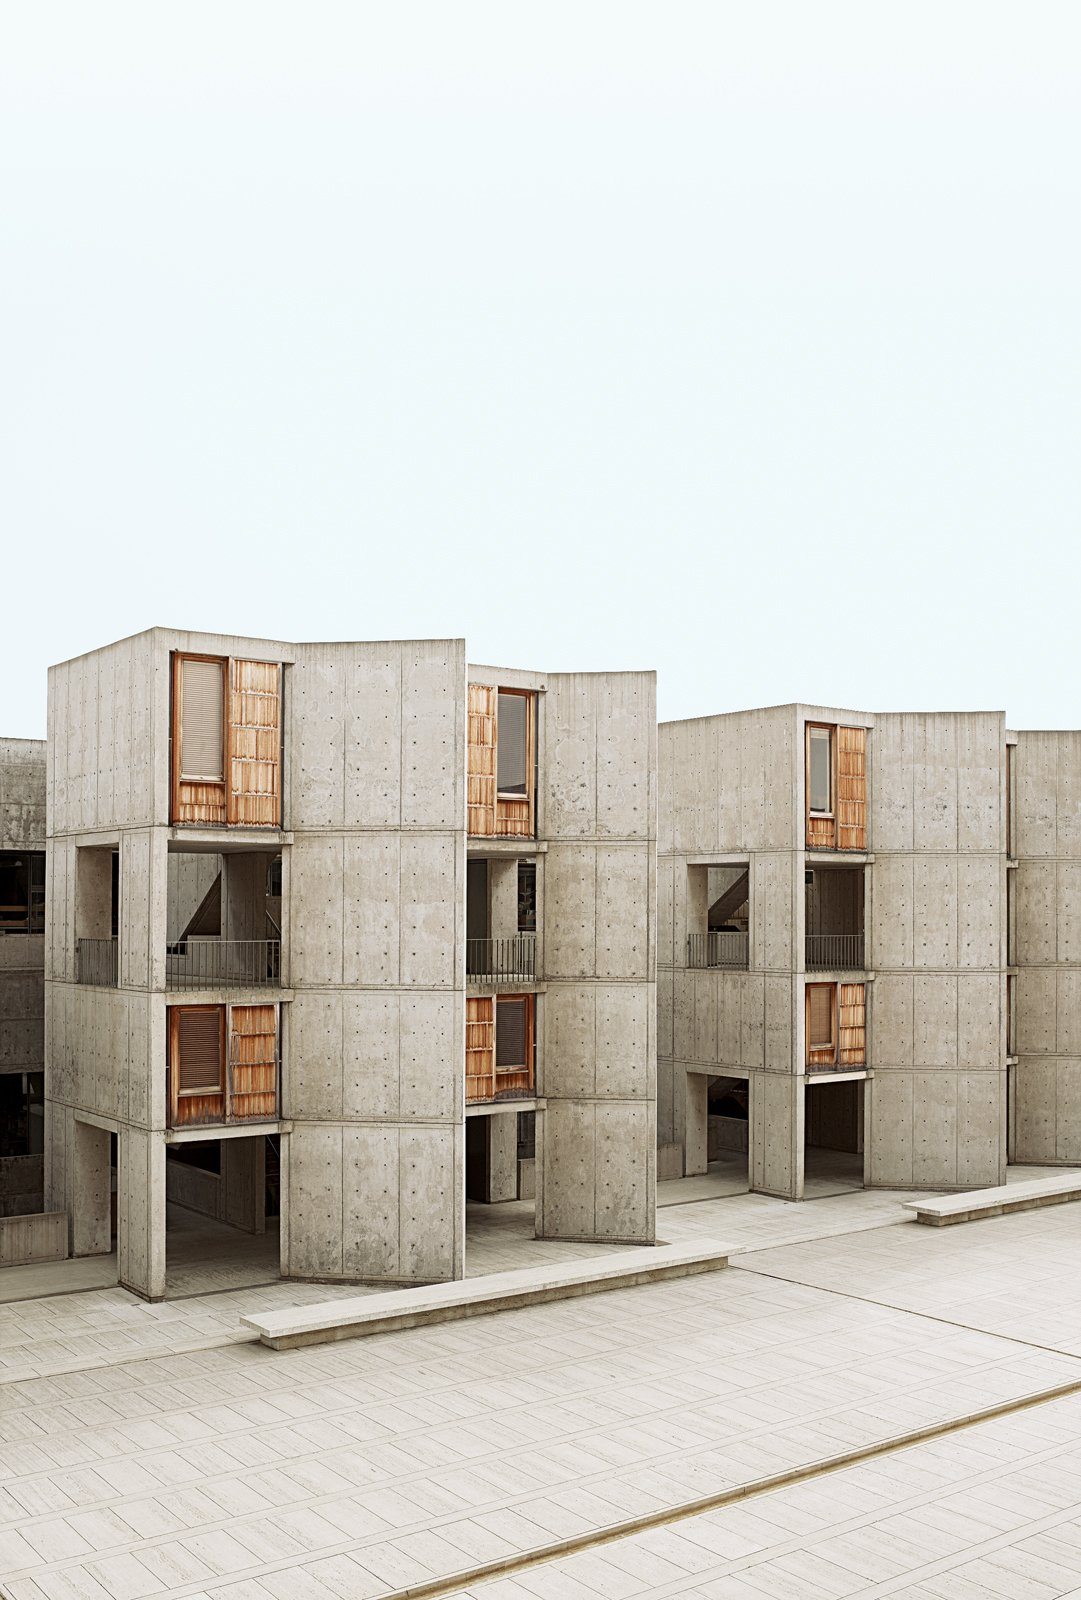 Louis Kahn's Salk Institute (top left) is a stunning building that looks directly out to the sea. Architectural tourists flock to the site, which still functions as a working laboratory.  buildings by pulltab from San Diego, CA